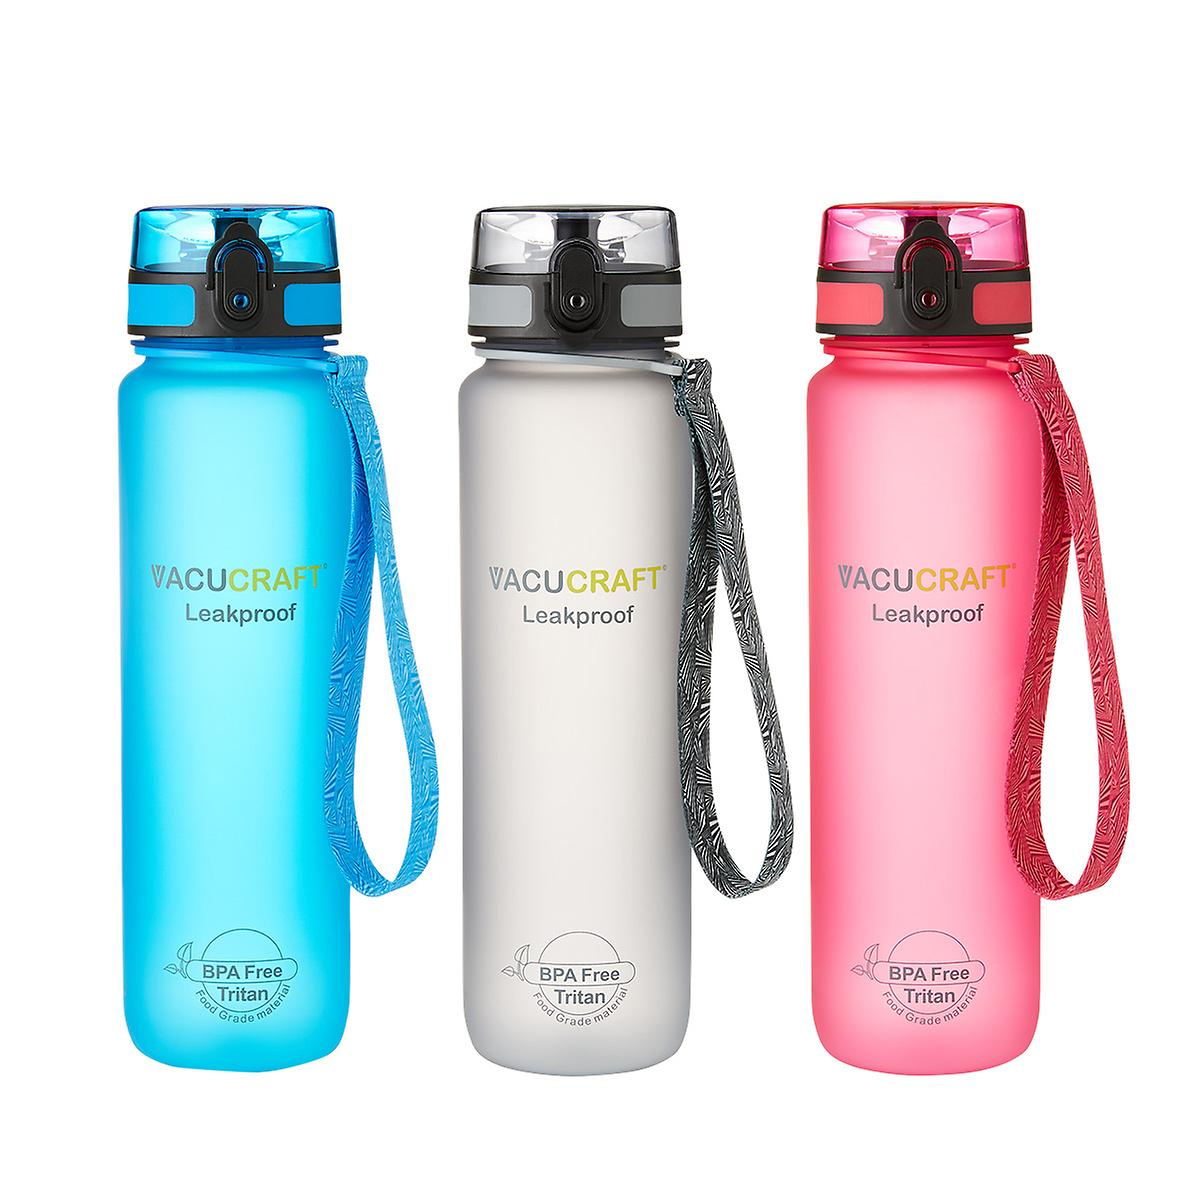 32 oz. Vacucraft Water Bottles